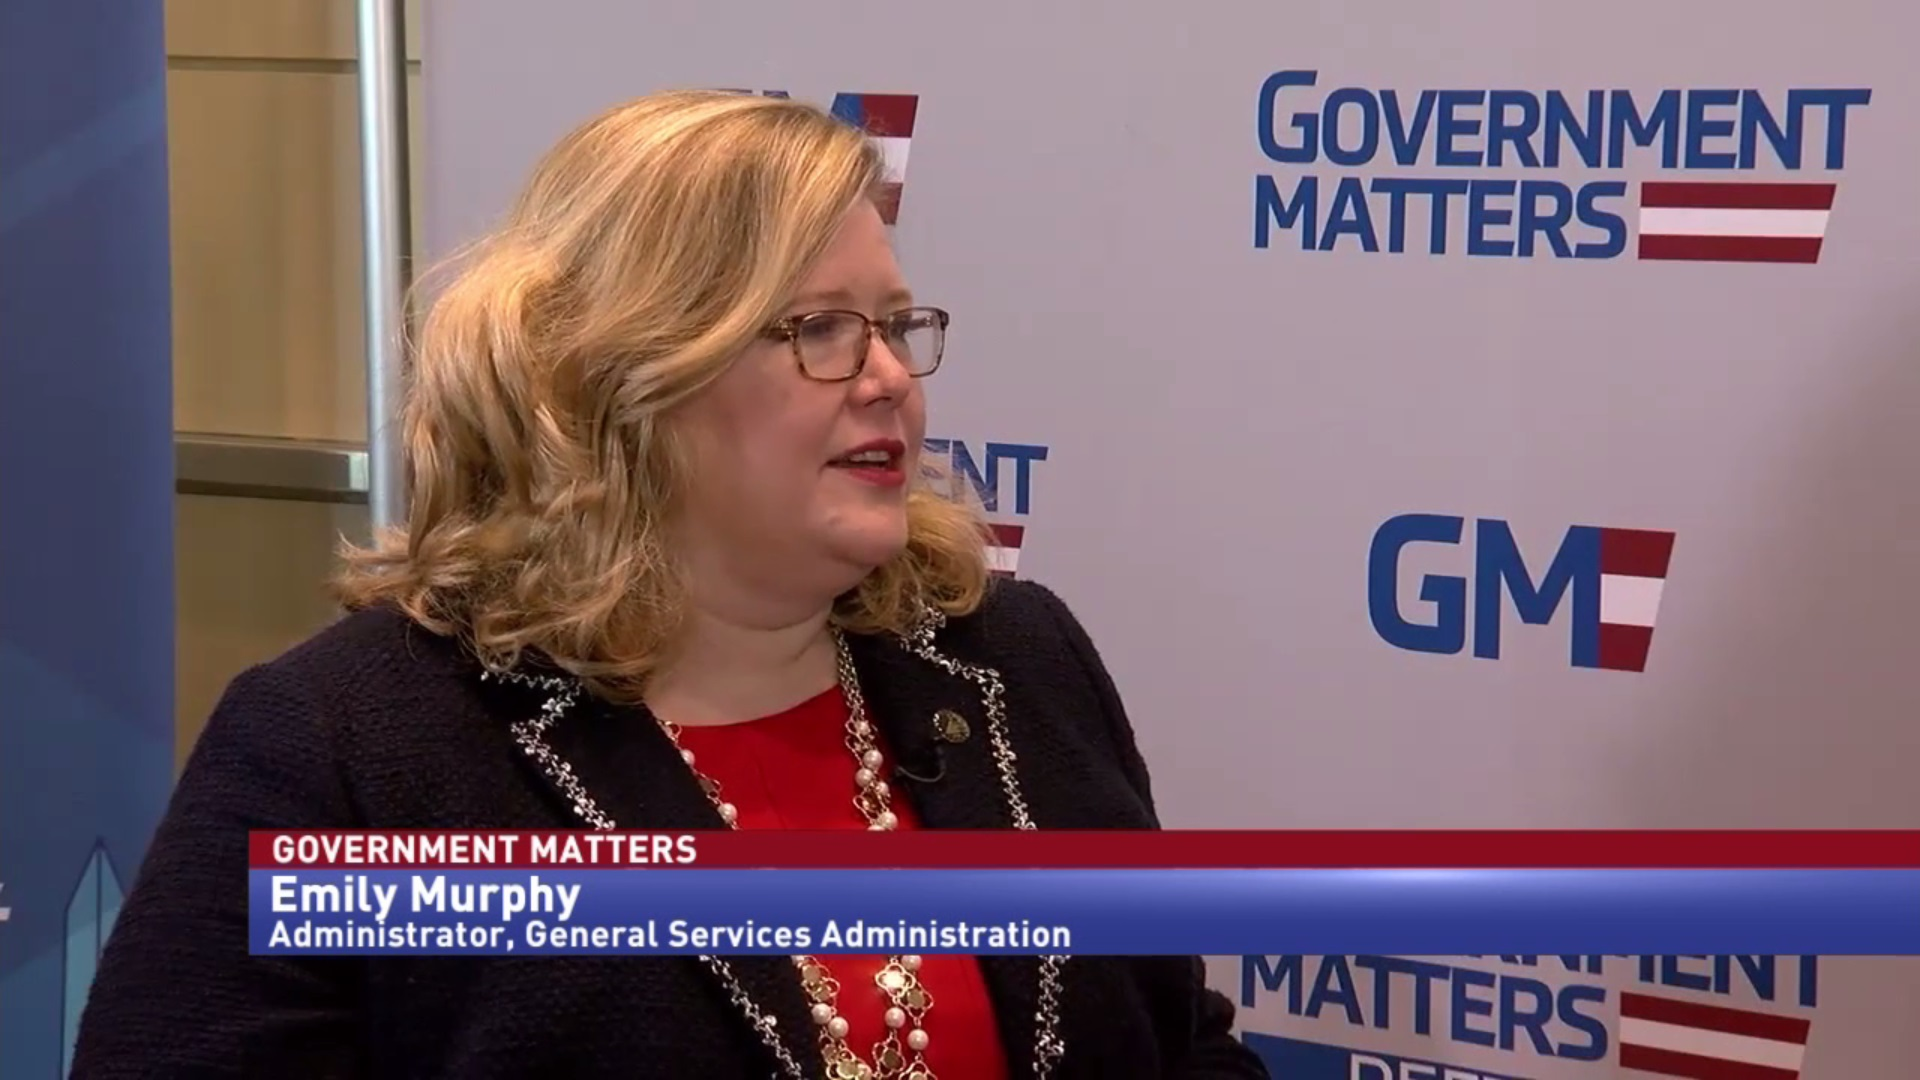 Top modernization, customer & management priorities at the General Services Administration